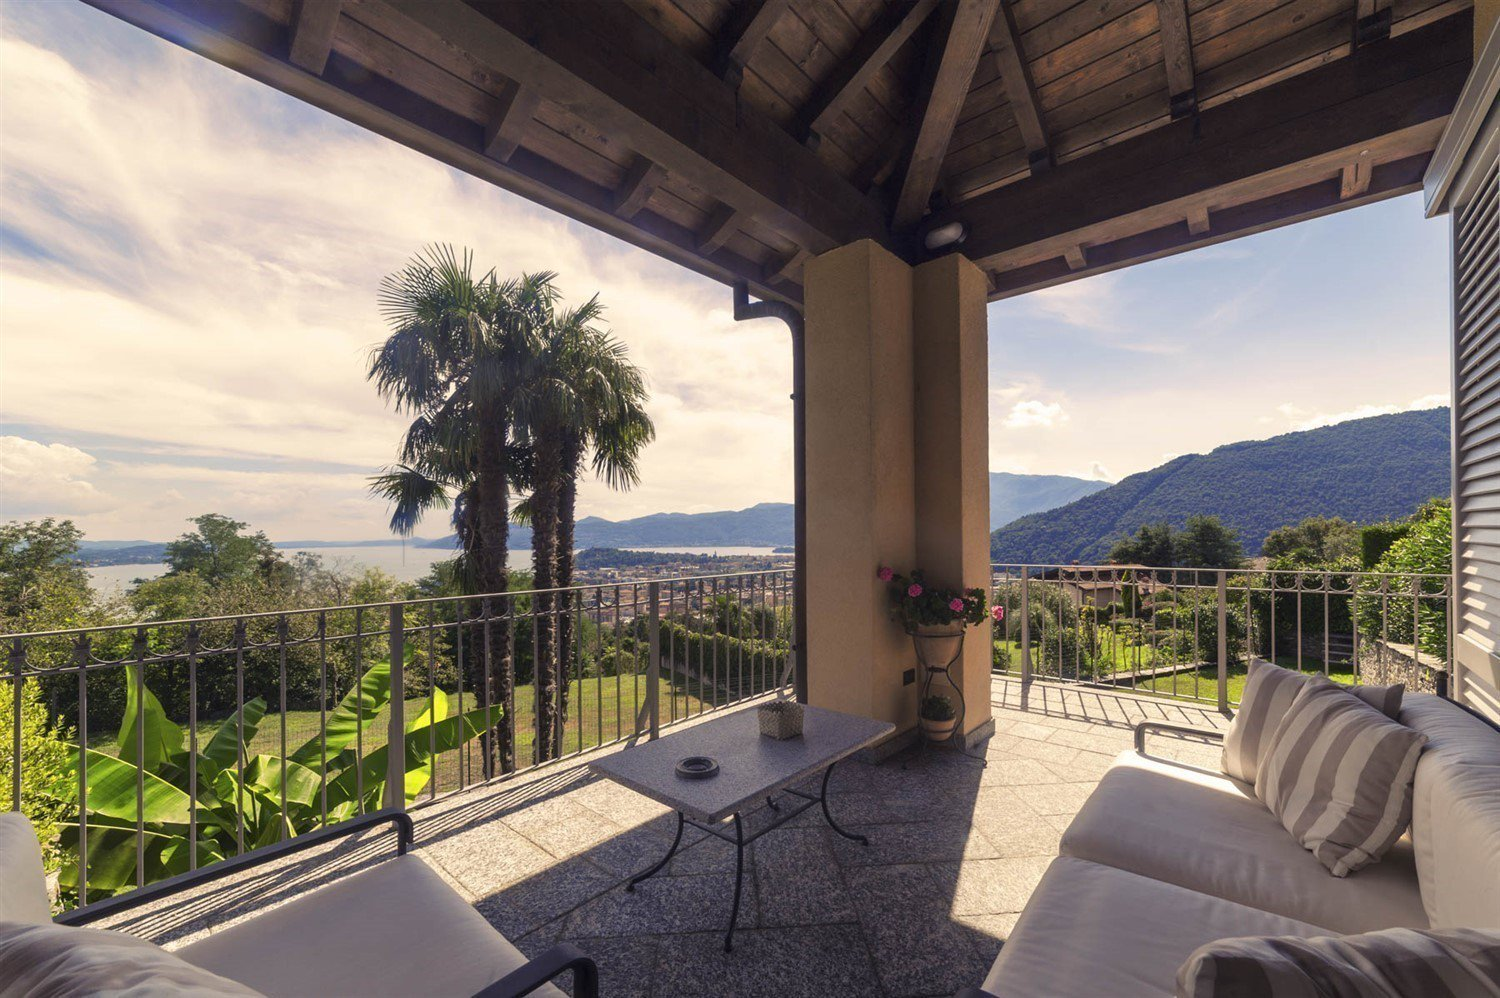 Modern villa for sale on Verbania hill with a panoramic lake view - lake view terrace